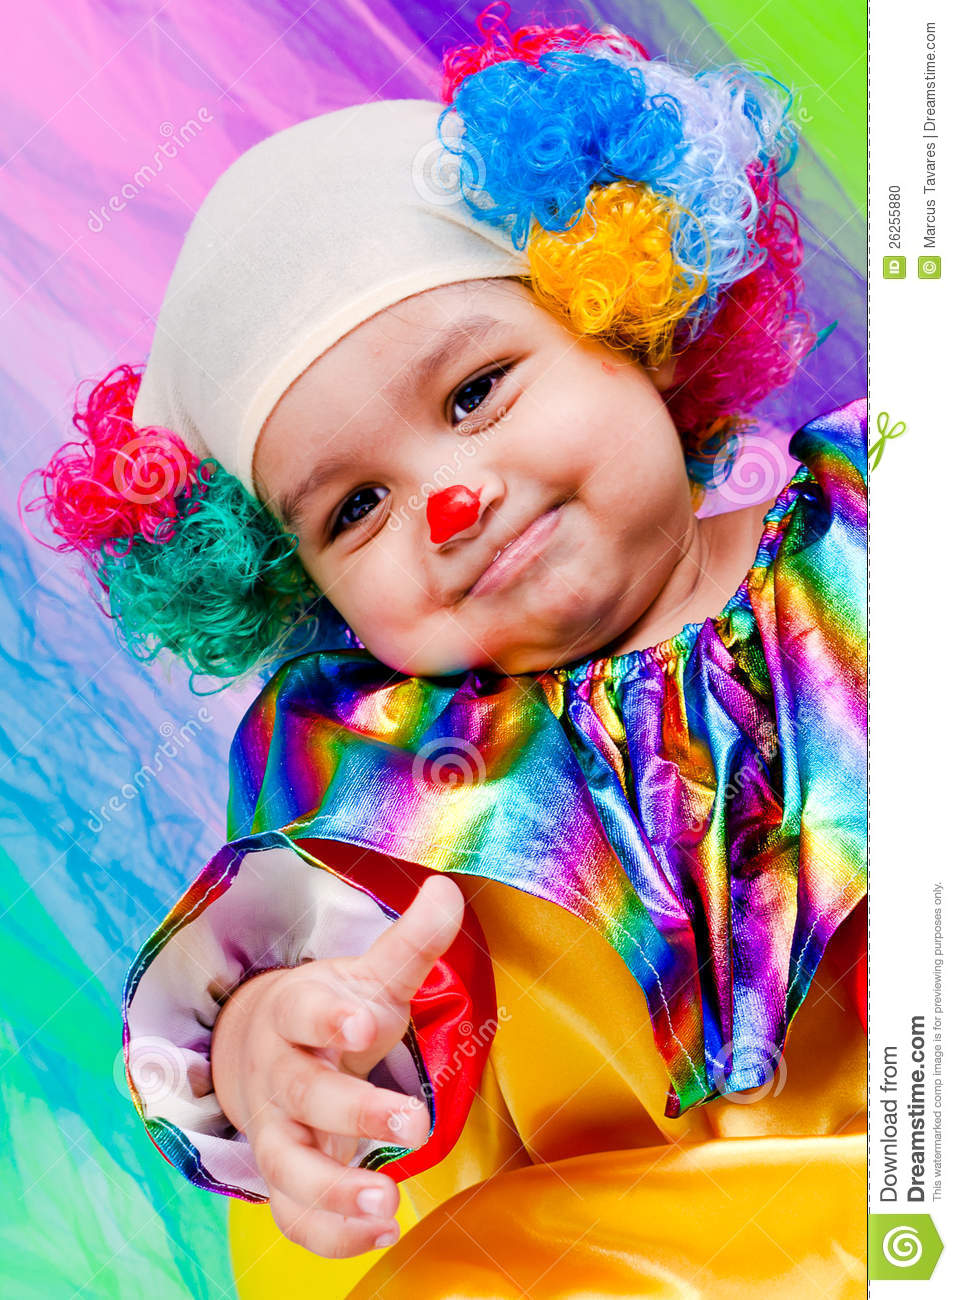 A Nice Kid Wearing Clown Clothes. Stock Photo - Image 26255880